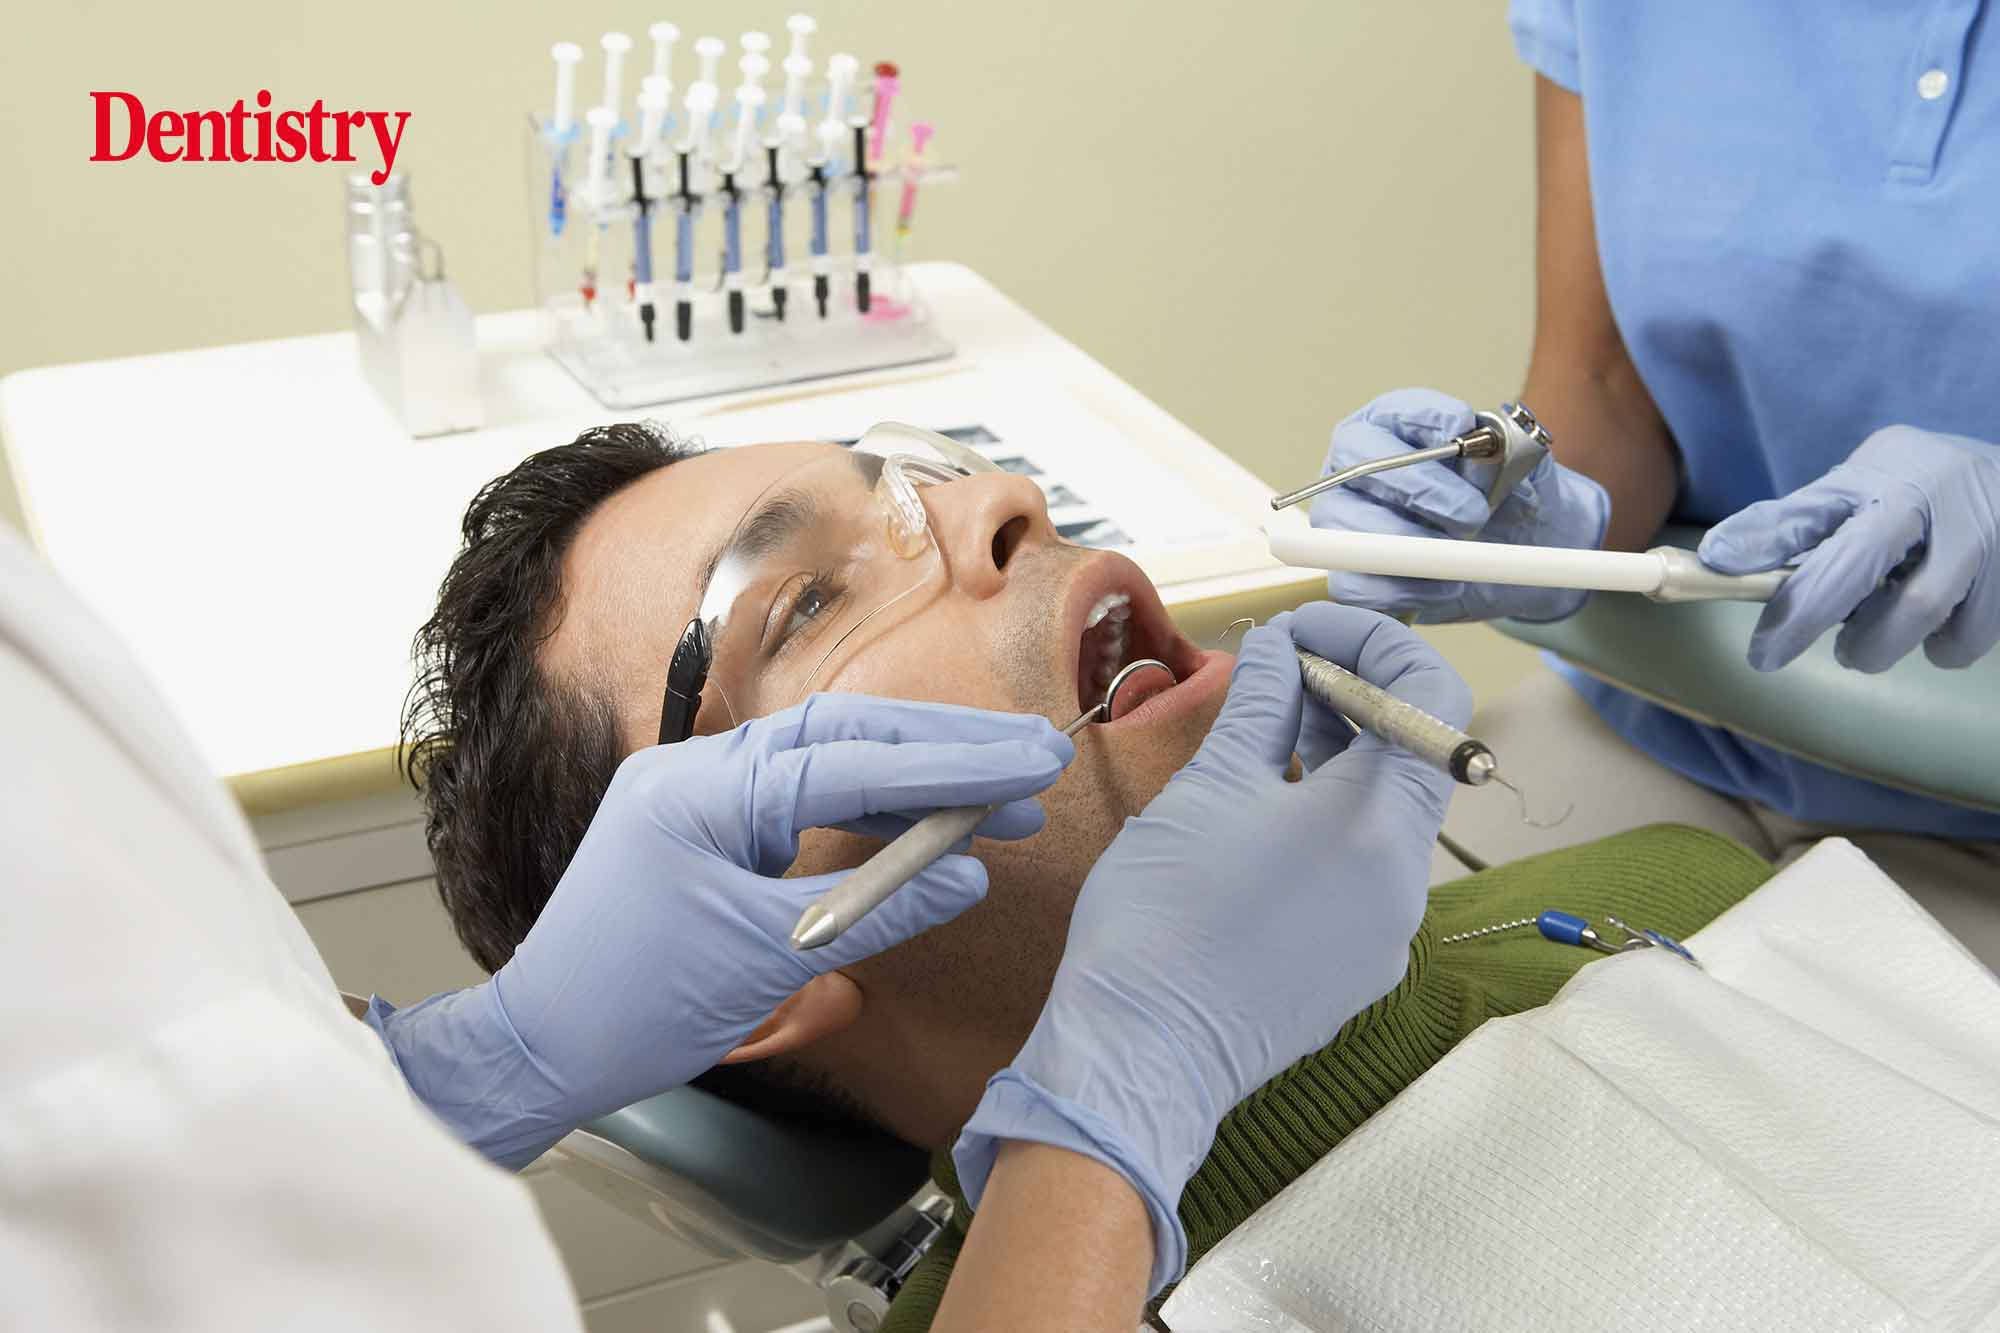 Patients on the Isle of Wight are living in 'constant pain' due to a lack of dental services.